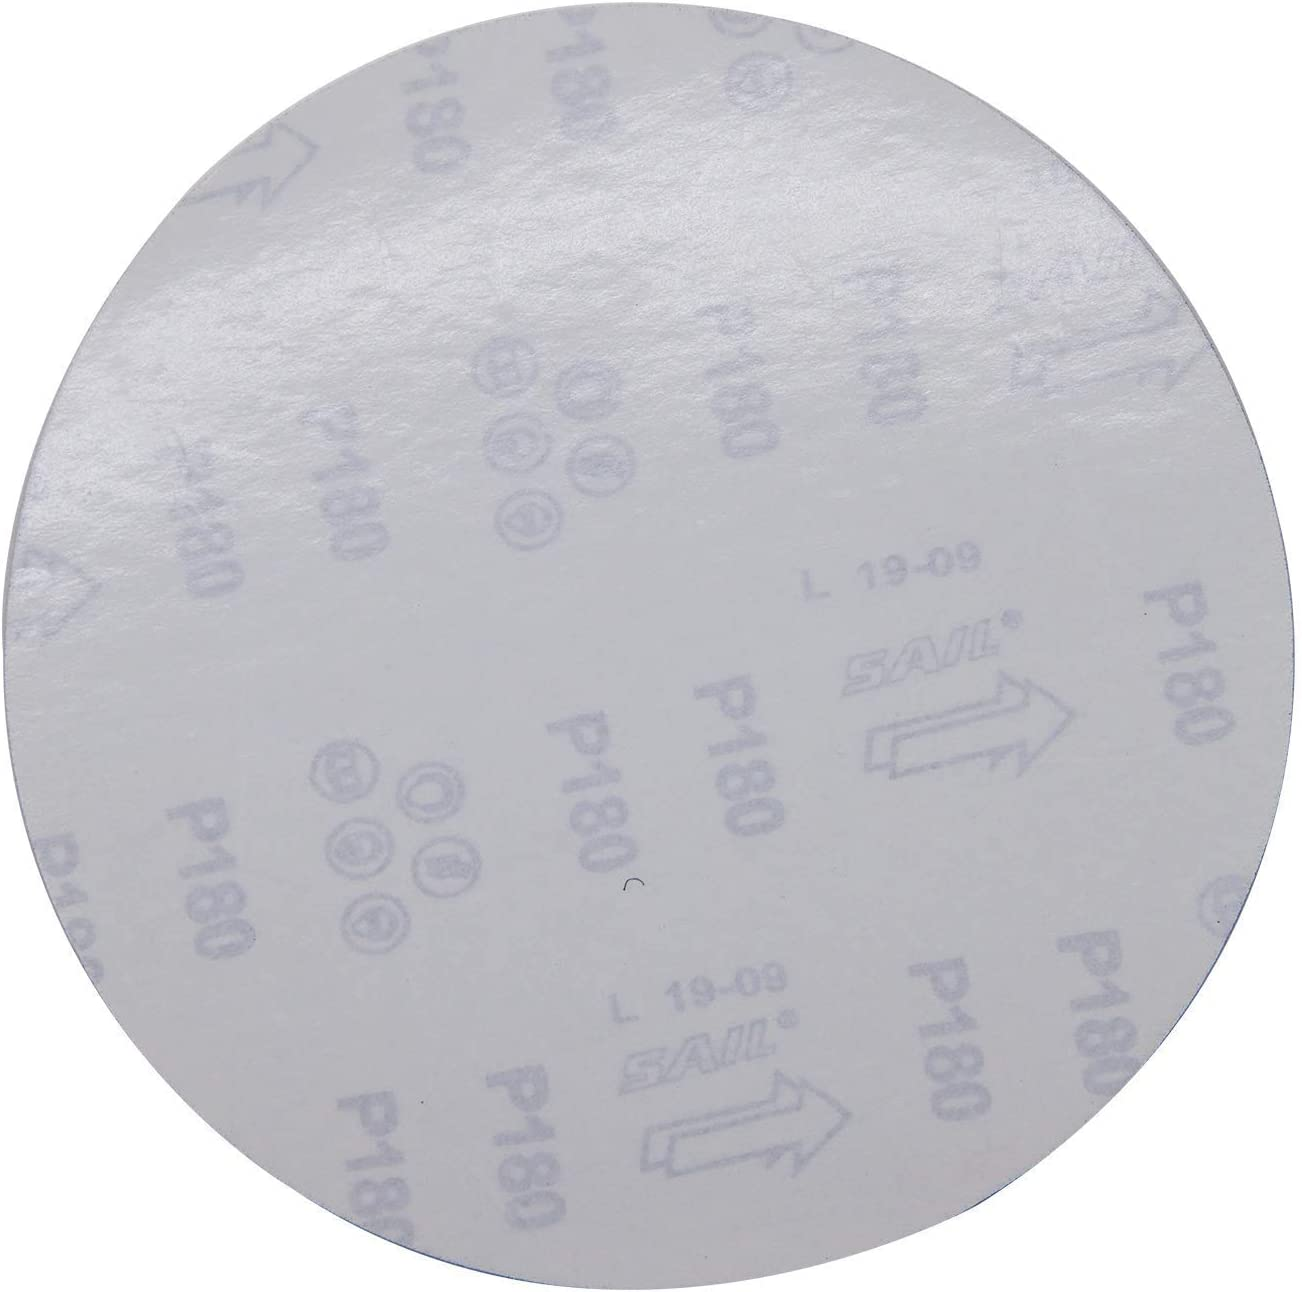 Metal Sanding and Mirror Jewelry Car Polishing GOH DODD Sander Sheets 40-400 Grits Grinding Self Stick Aluminum Oxide Sanding Disc for Wood Furniture Finishing 40 Pieces 12 Inch Sandpaper